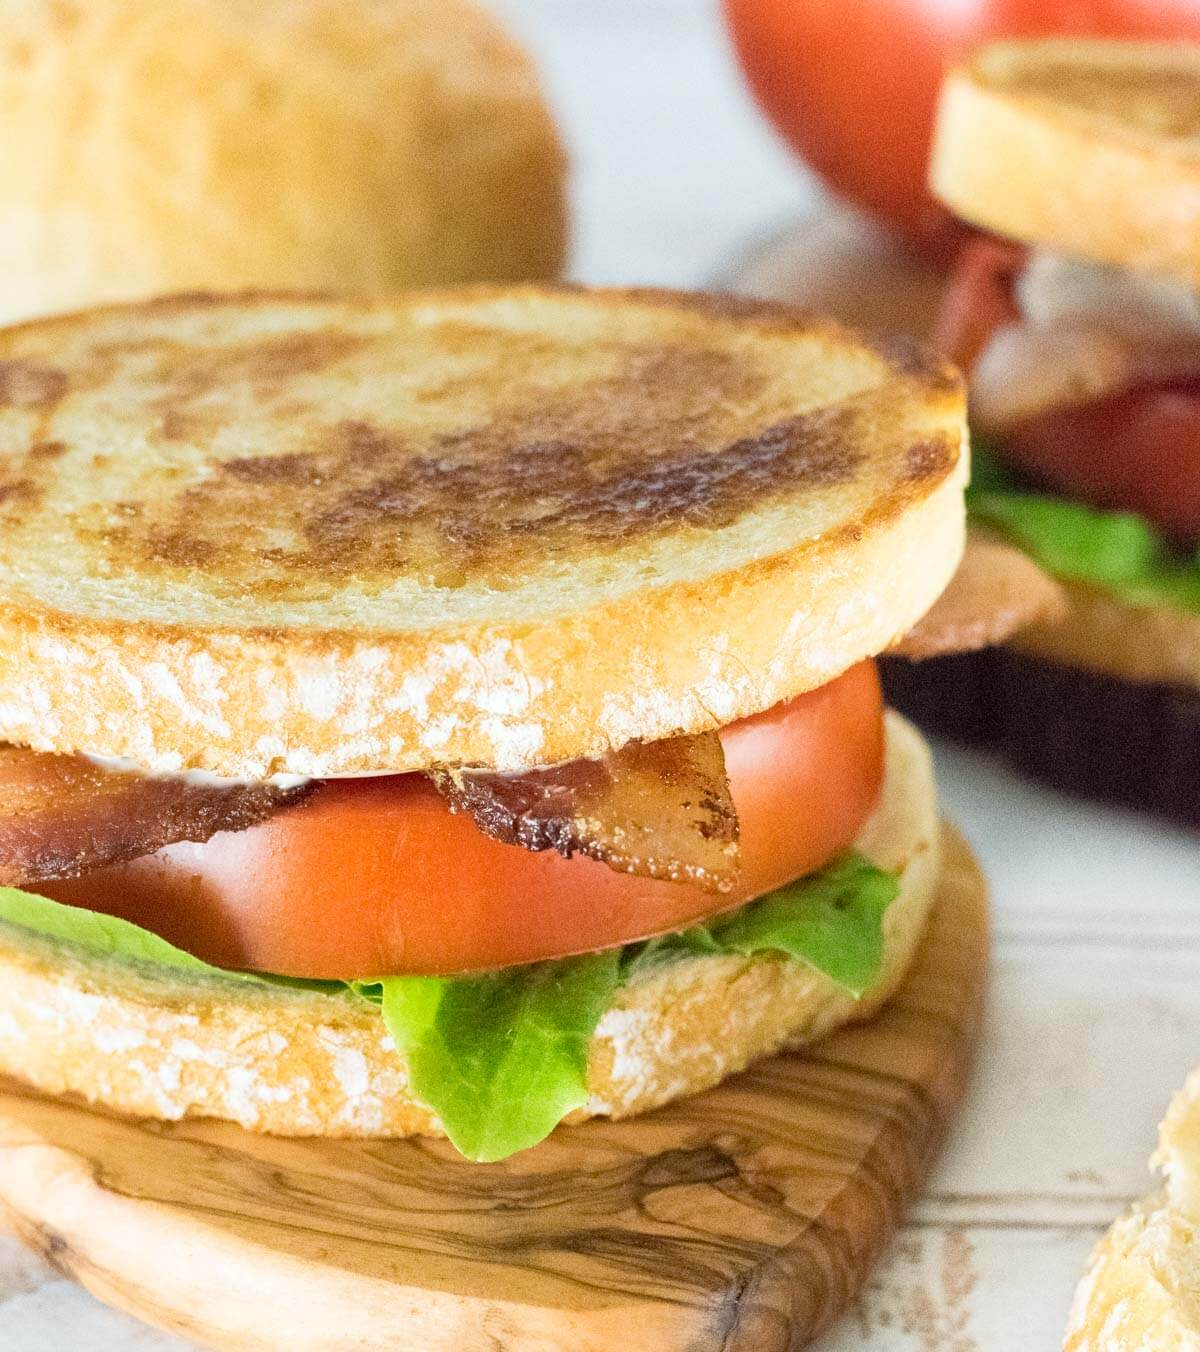 Ultimate BLT close up with thick cut bacon and ripe tomato.